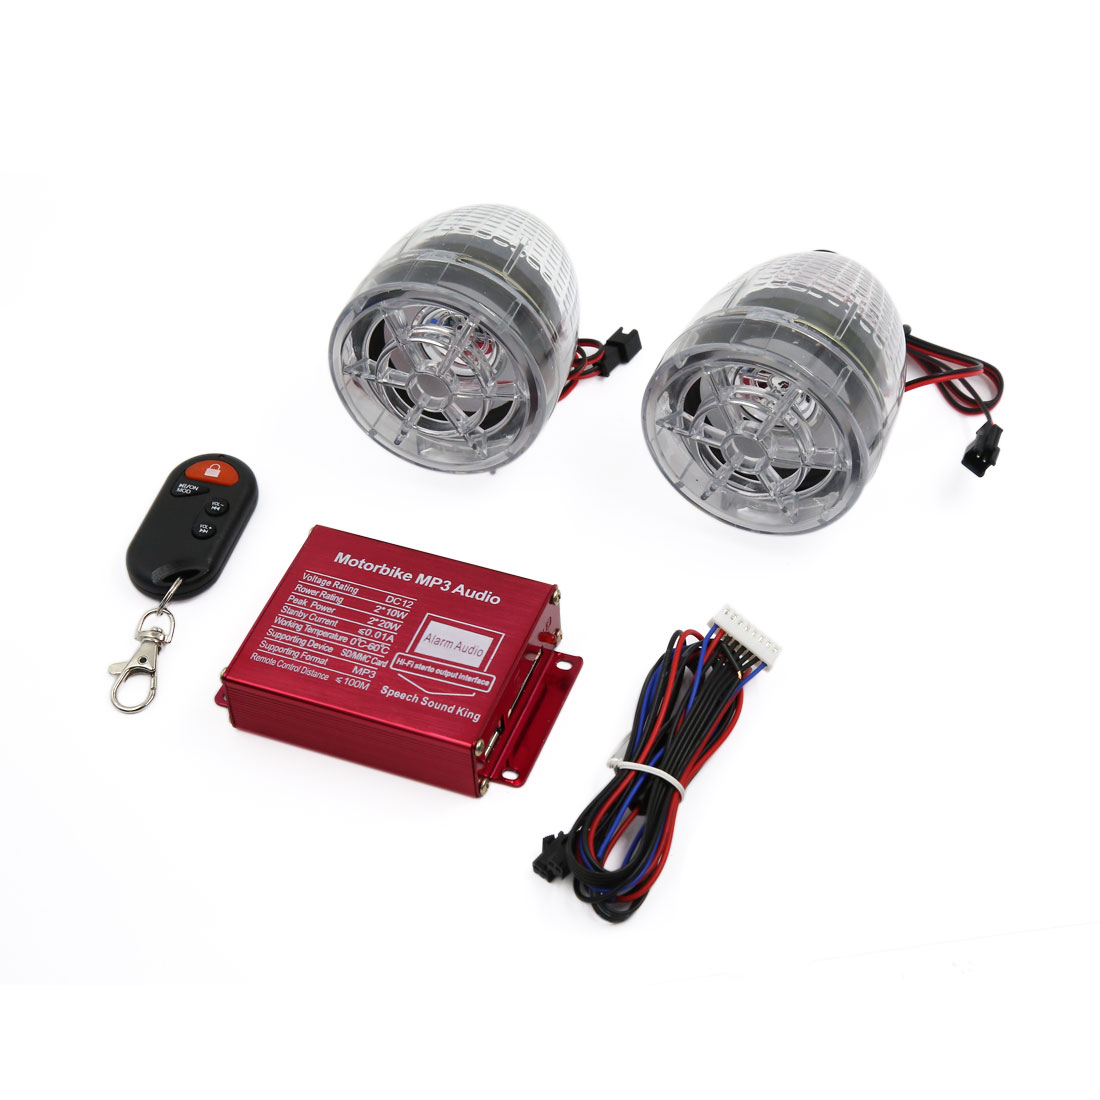 2Pcs MP3 Amplifier Speaker Audio Stereo FM Radio for Motorcycle Motorbike